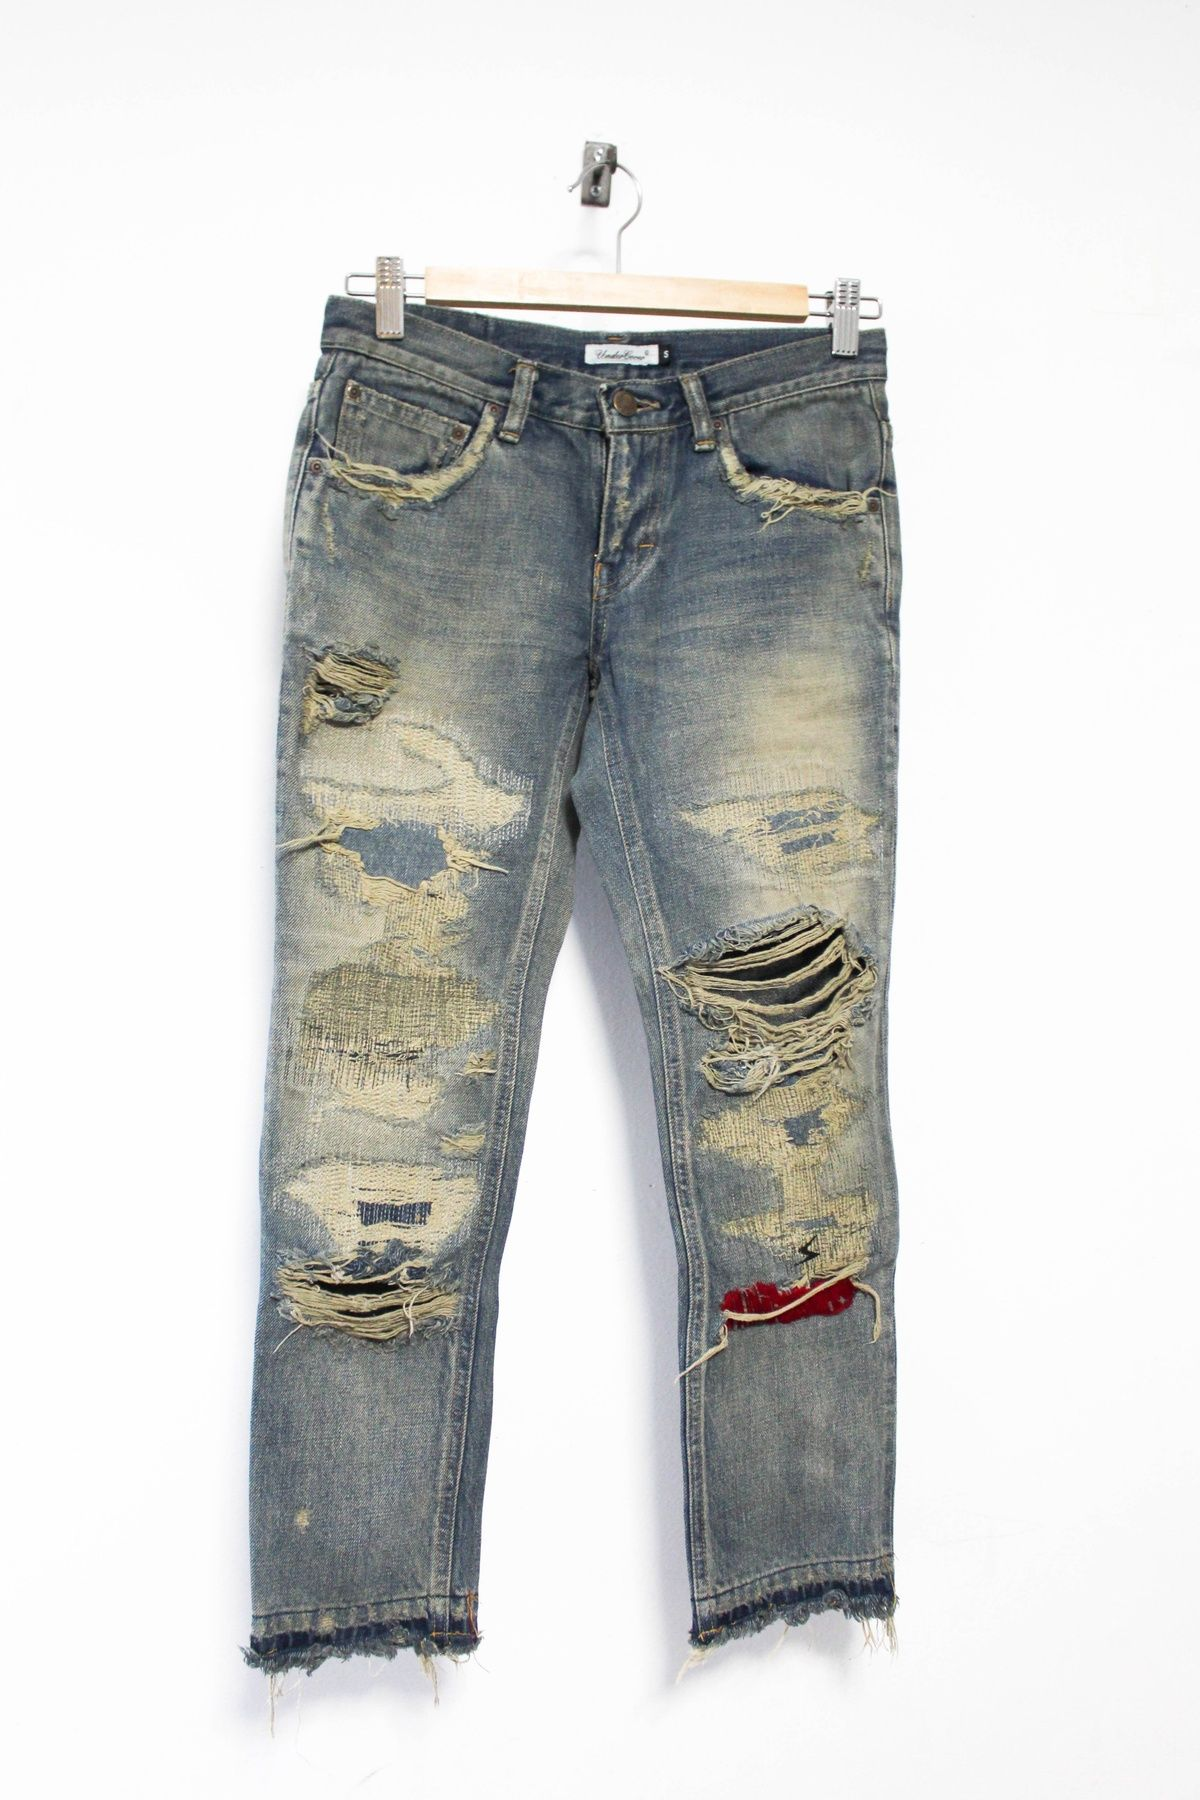 Undercover 68 Denim Distressed Deconstructed Pants Rare Womens version Size  S 100% Cotton Made in 584d6590c9